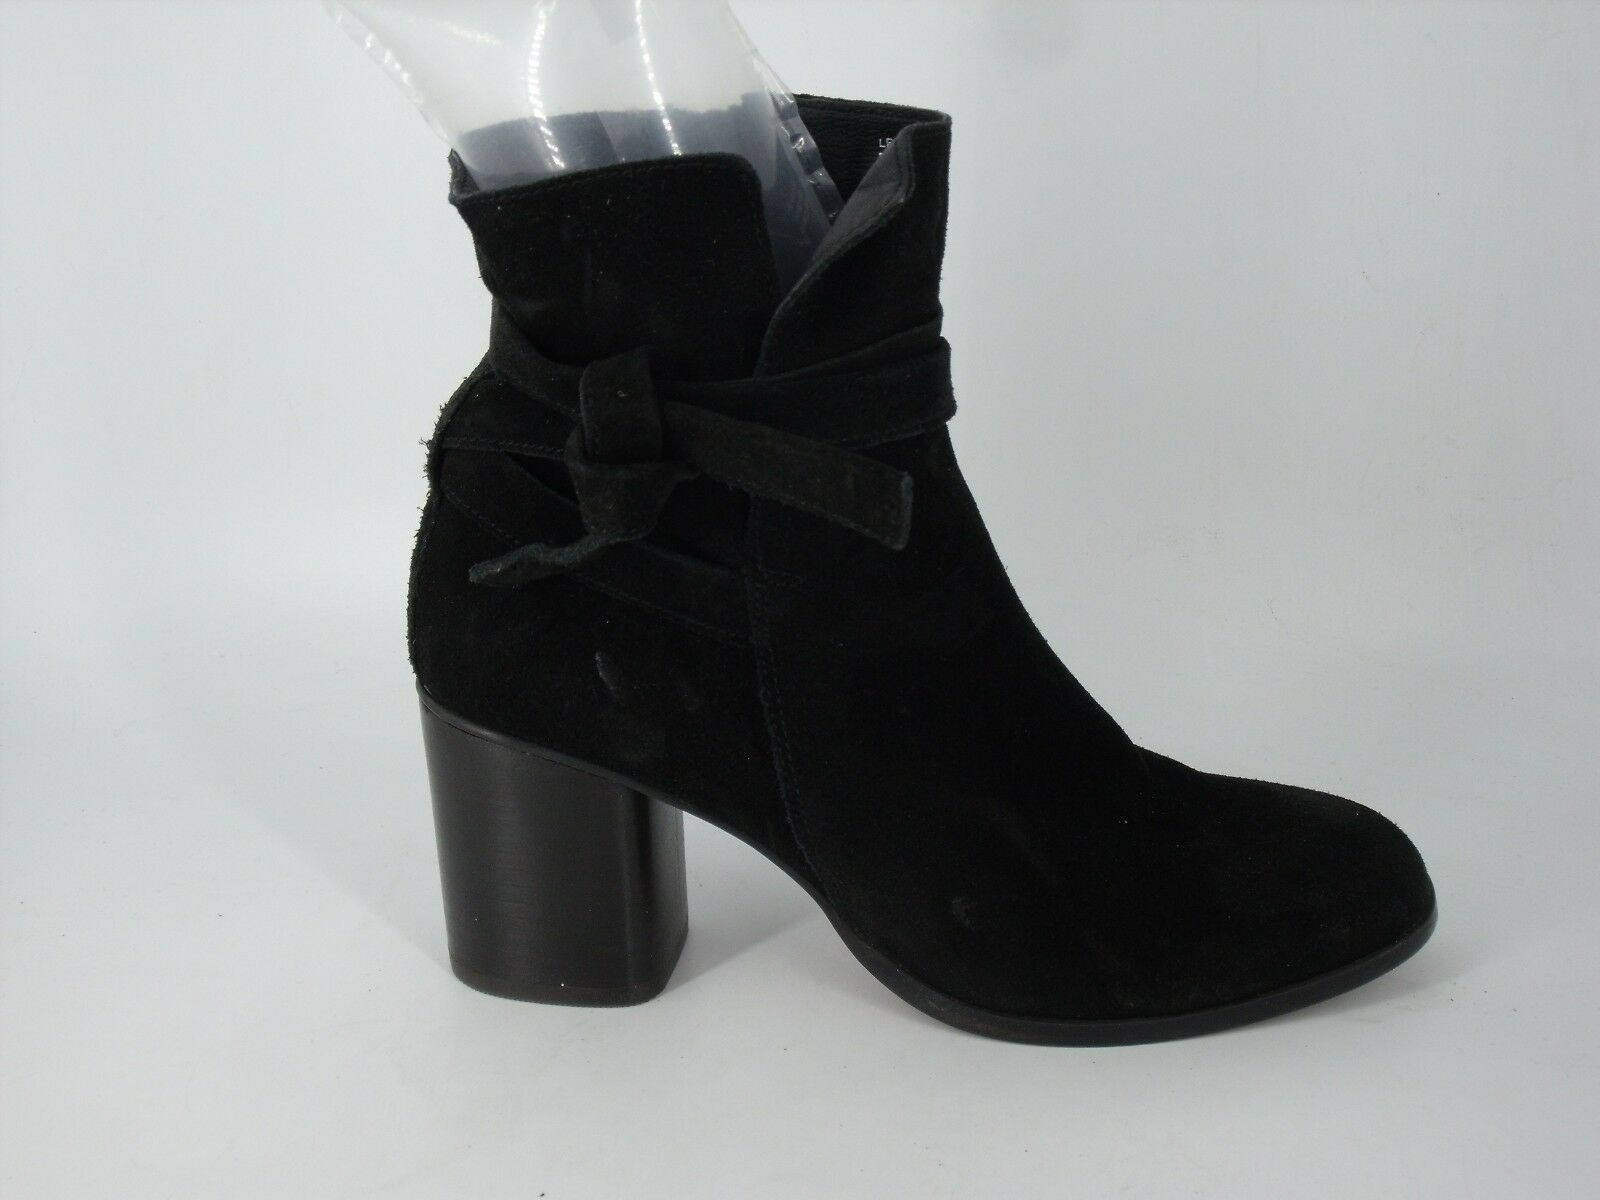 4b1b1d15f6355 ... CARVELA 101 SUEDE ANKLE bottes Taille Taille Taille UK 5 EU 38 NH091 AE  01 26d015 ...